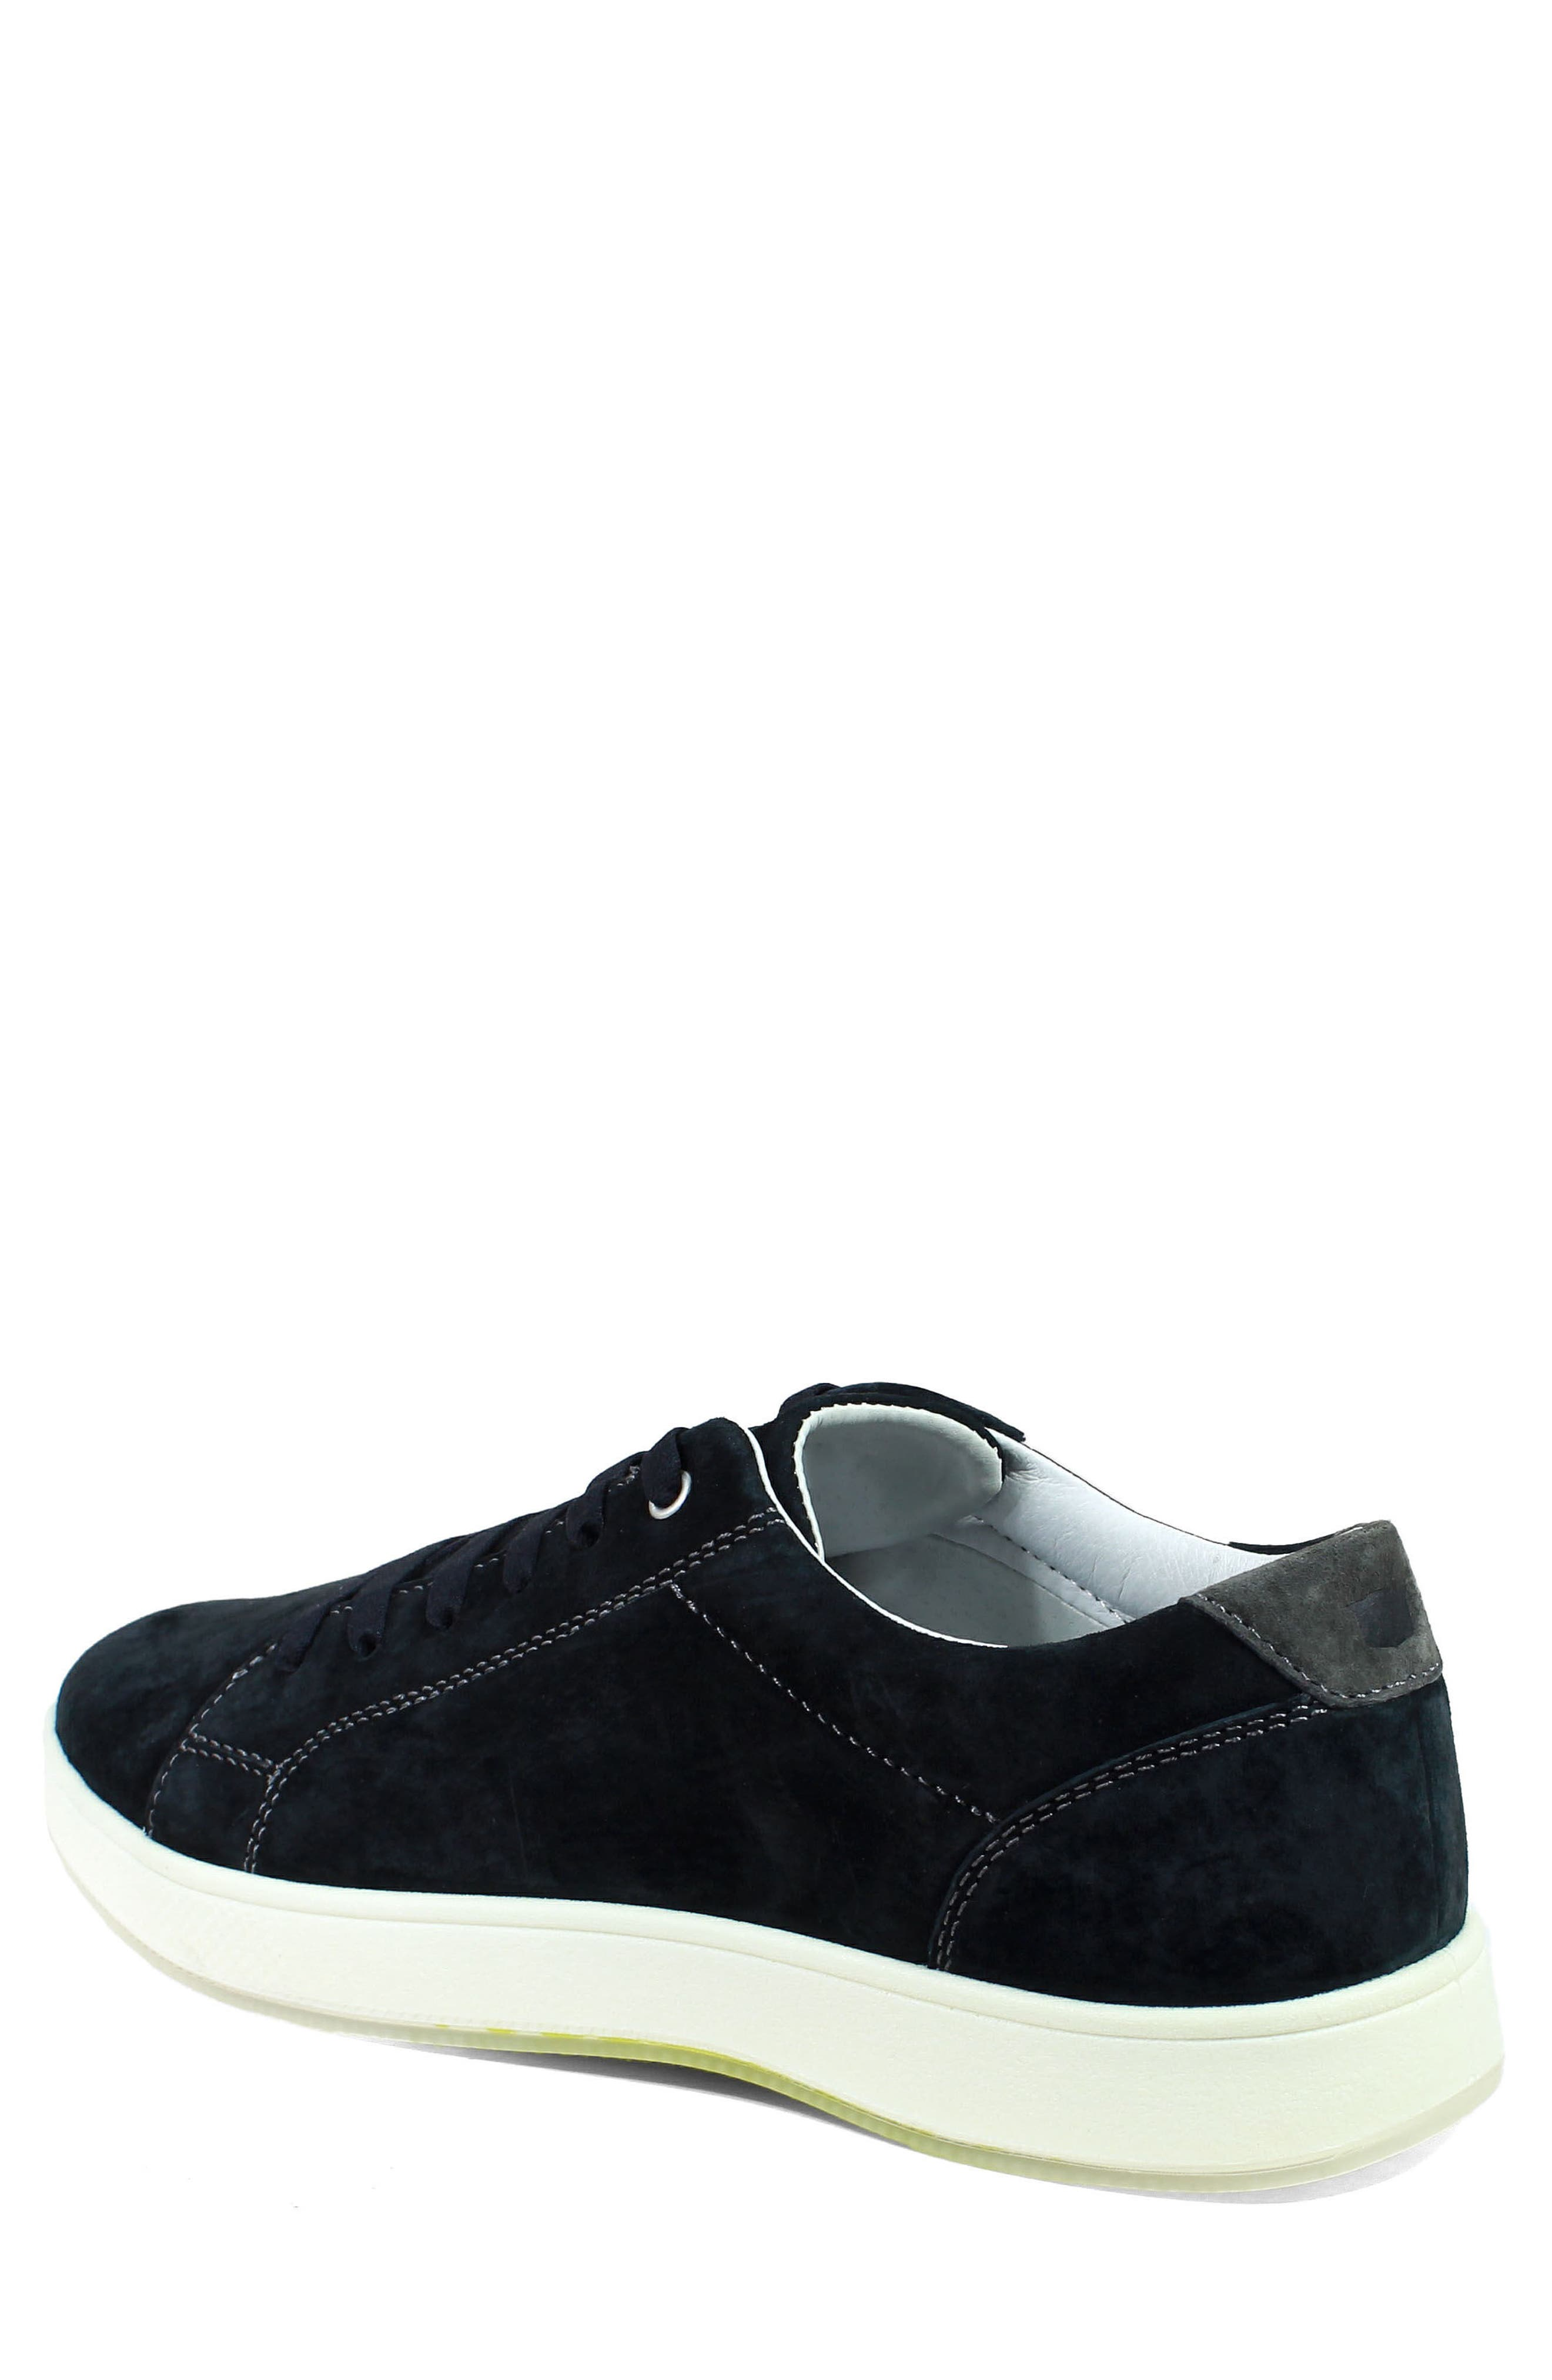 Edge Low Top Sneaker,                             Alternate thumbnail 2, color,                             BLACK NUBUCK